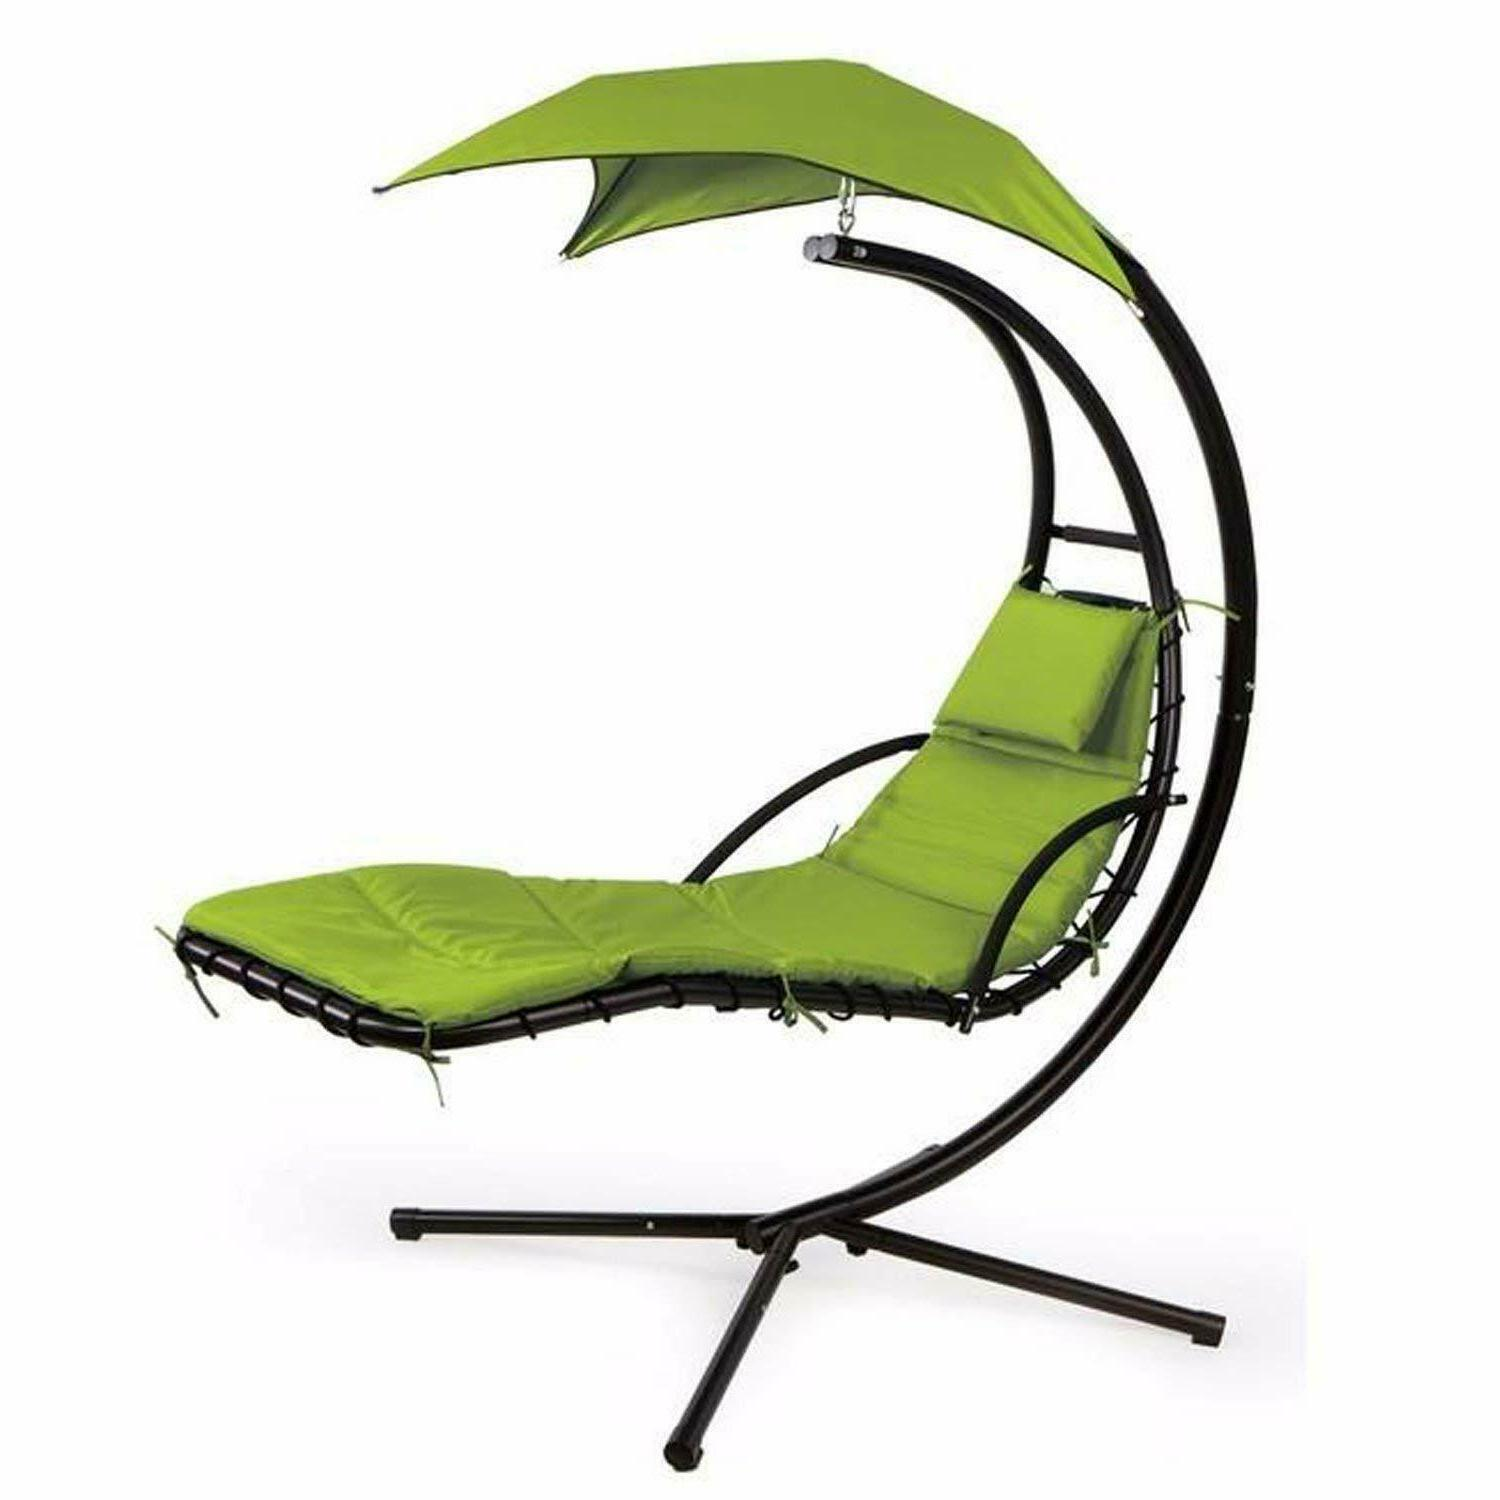 Hanging Chaise Lounger Arc Swing Chair